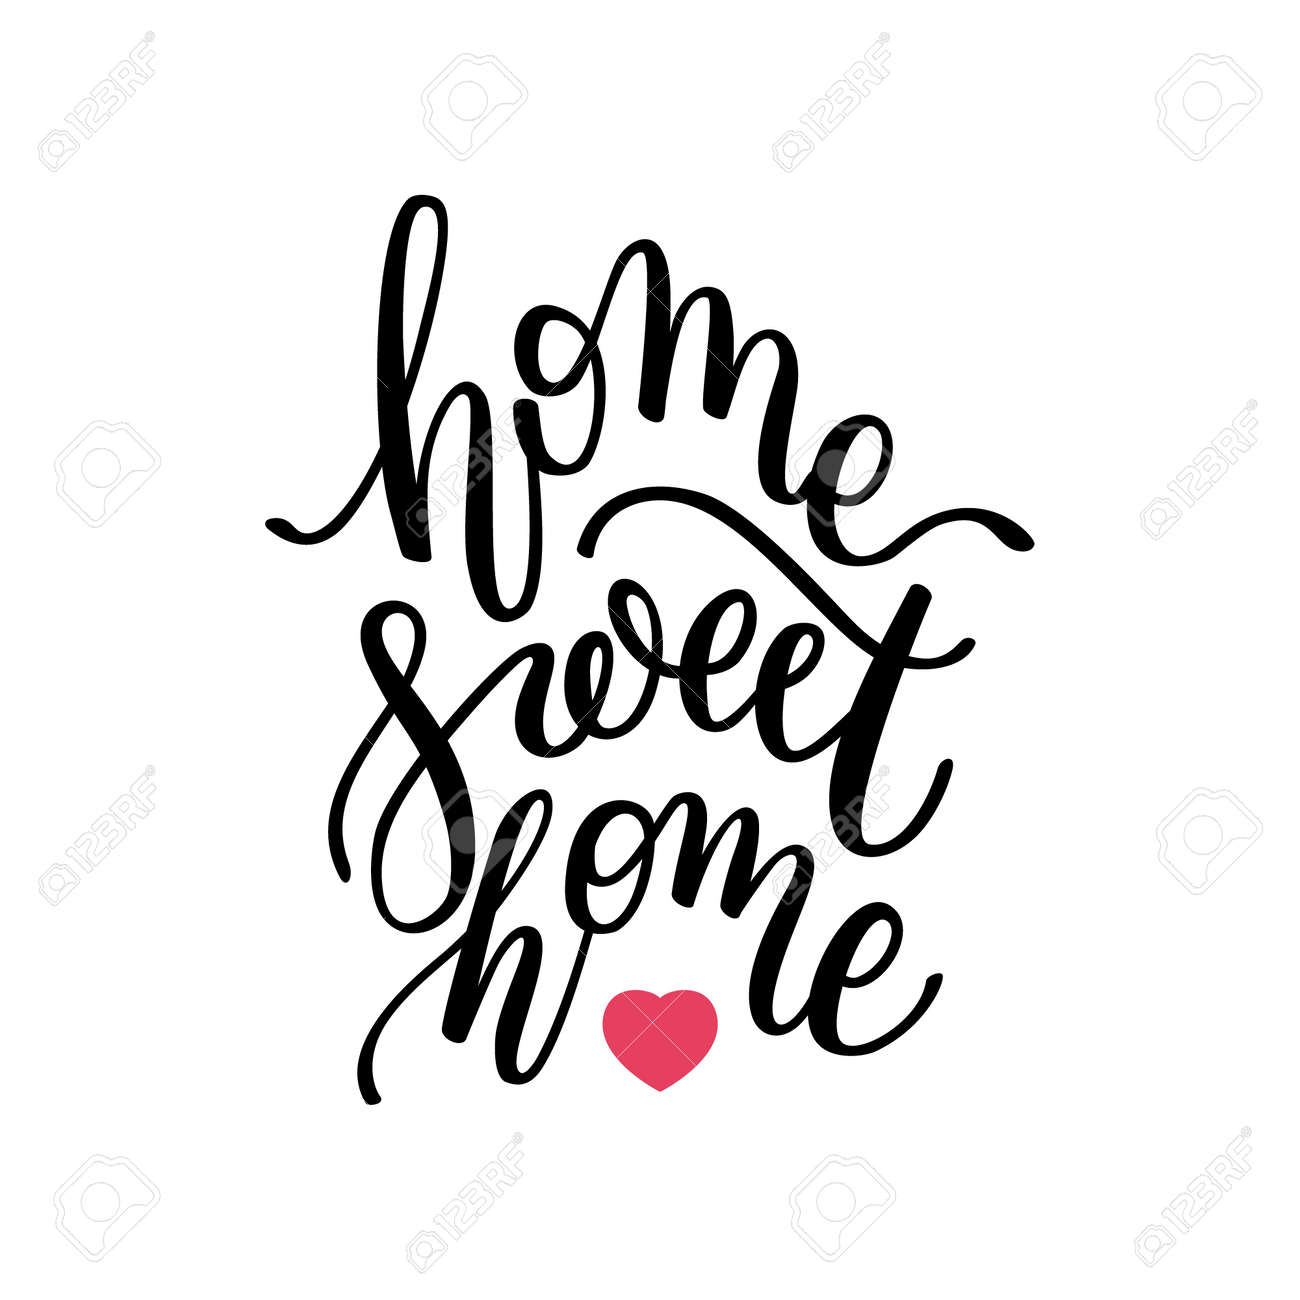 picture about Home Sweet Home Printable identified as house Cute property hand lettering. Template for card, poster, print.